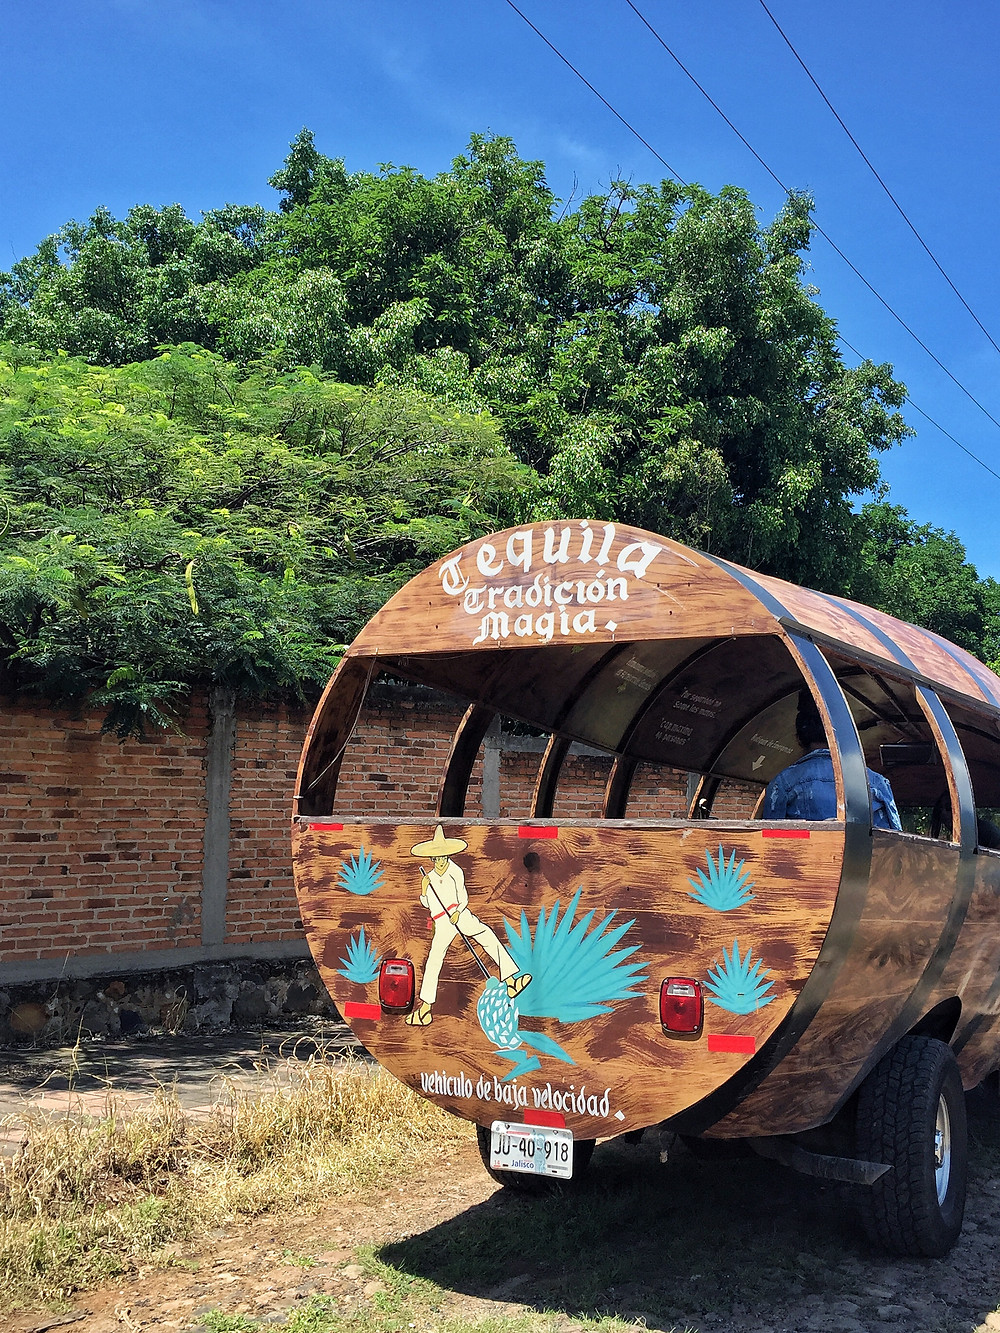 Barrel bus in Tequila town